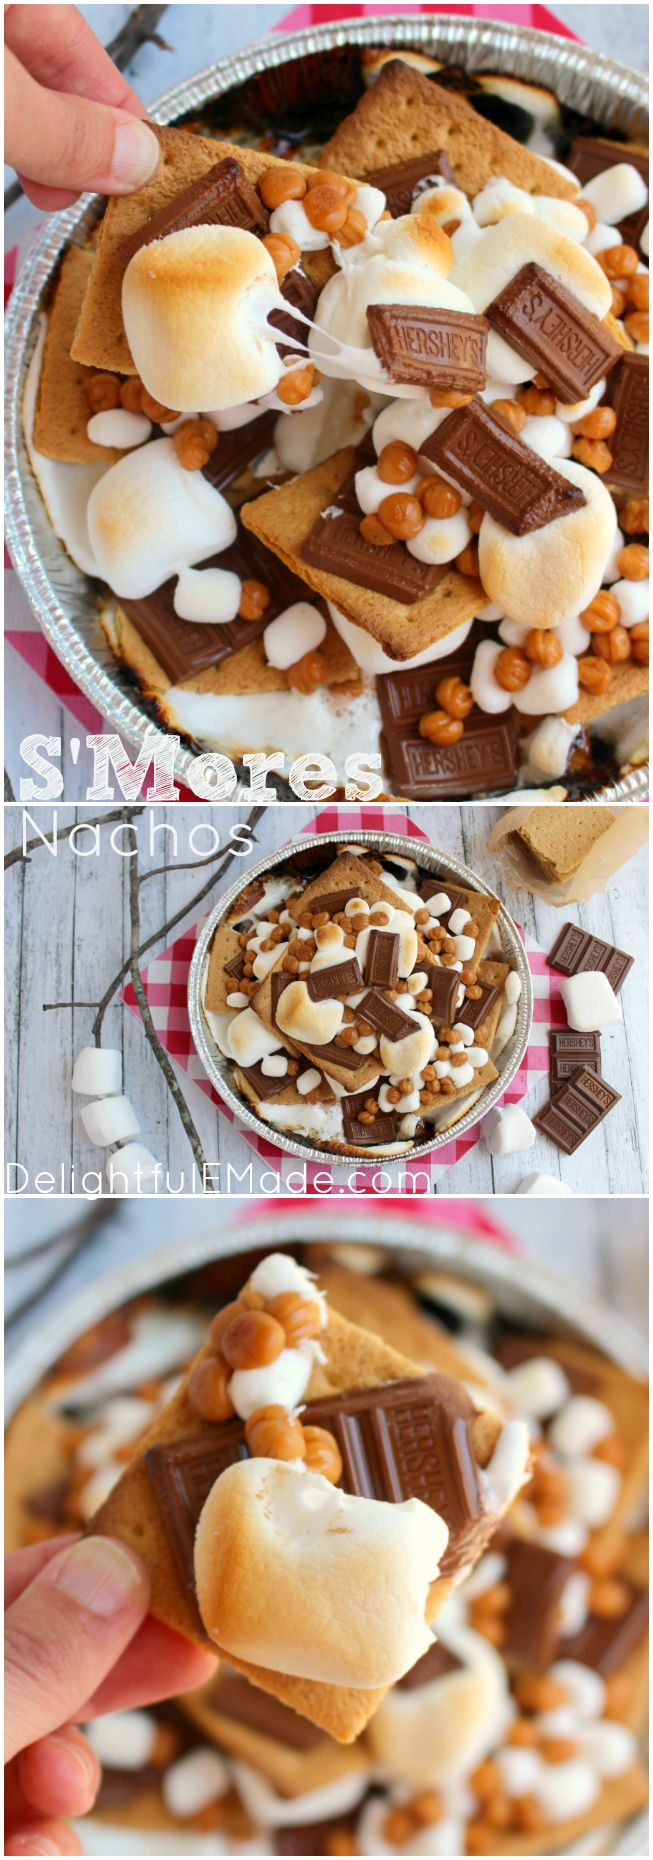 A fun way for the entire family to enjoy s'mores right from the grill! Ready in under 10 minutes, and topped with all your favorites, these easy and delicious S'mores Nachos will having you going in for more! #LetsMakeSmores #ad